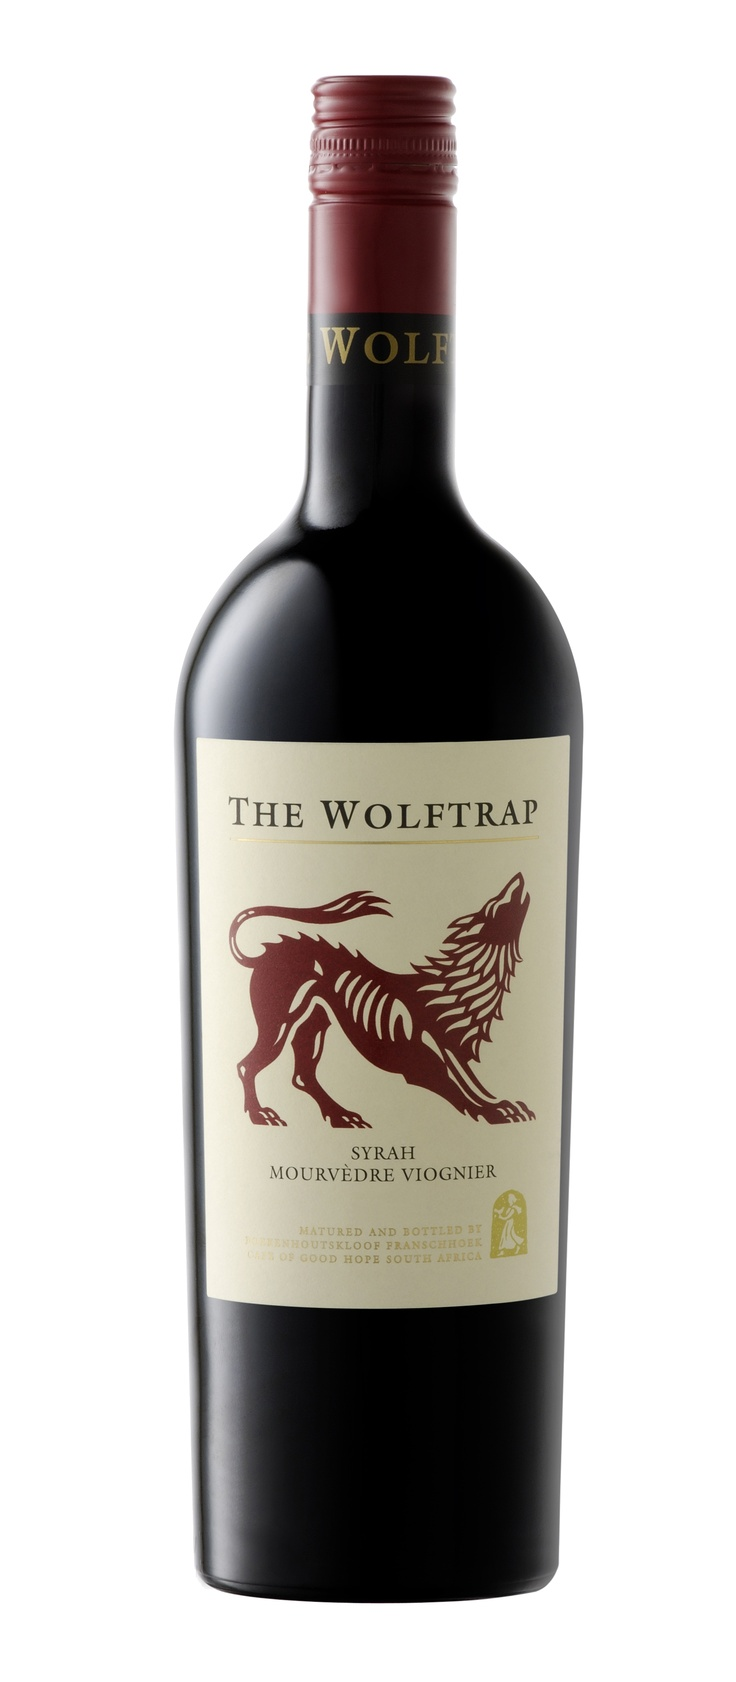 The Wolftrap (South Africa) wine